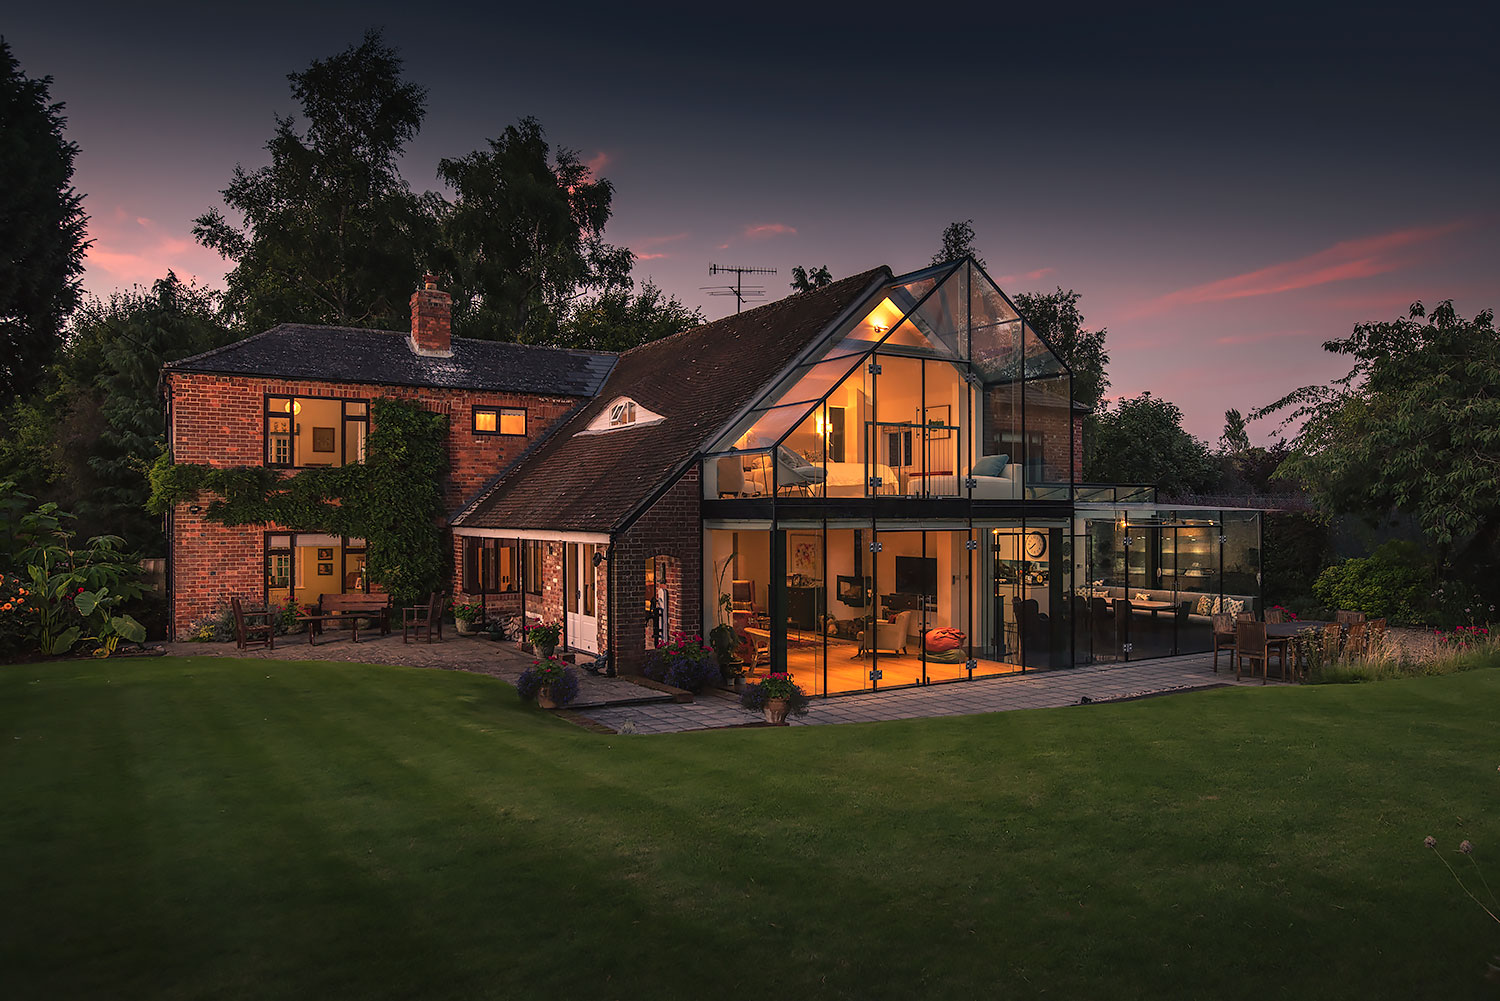 nighttime-architectural-photographer-real-estate-newbury-berkshire